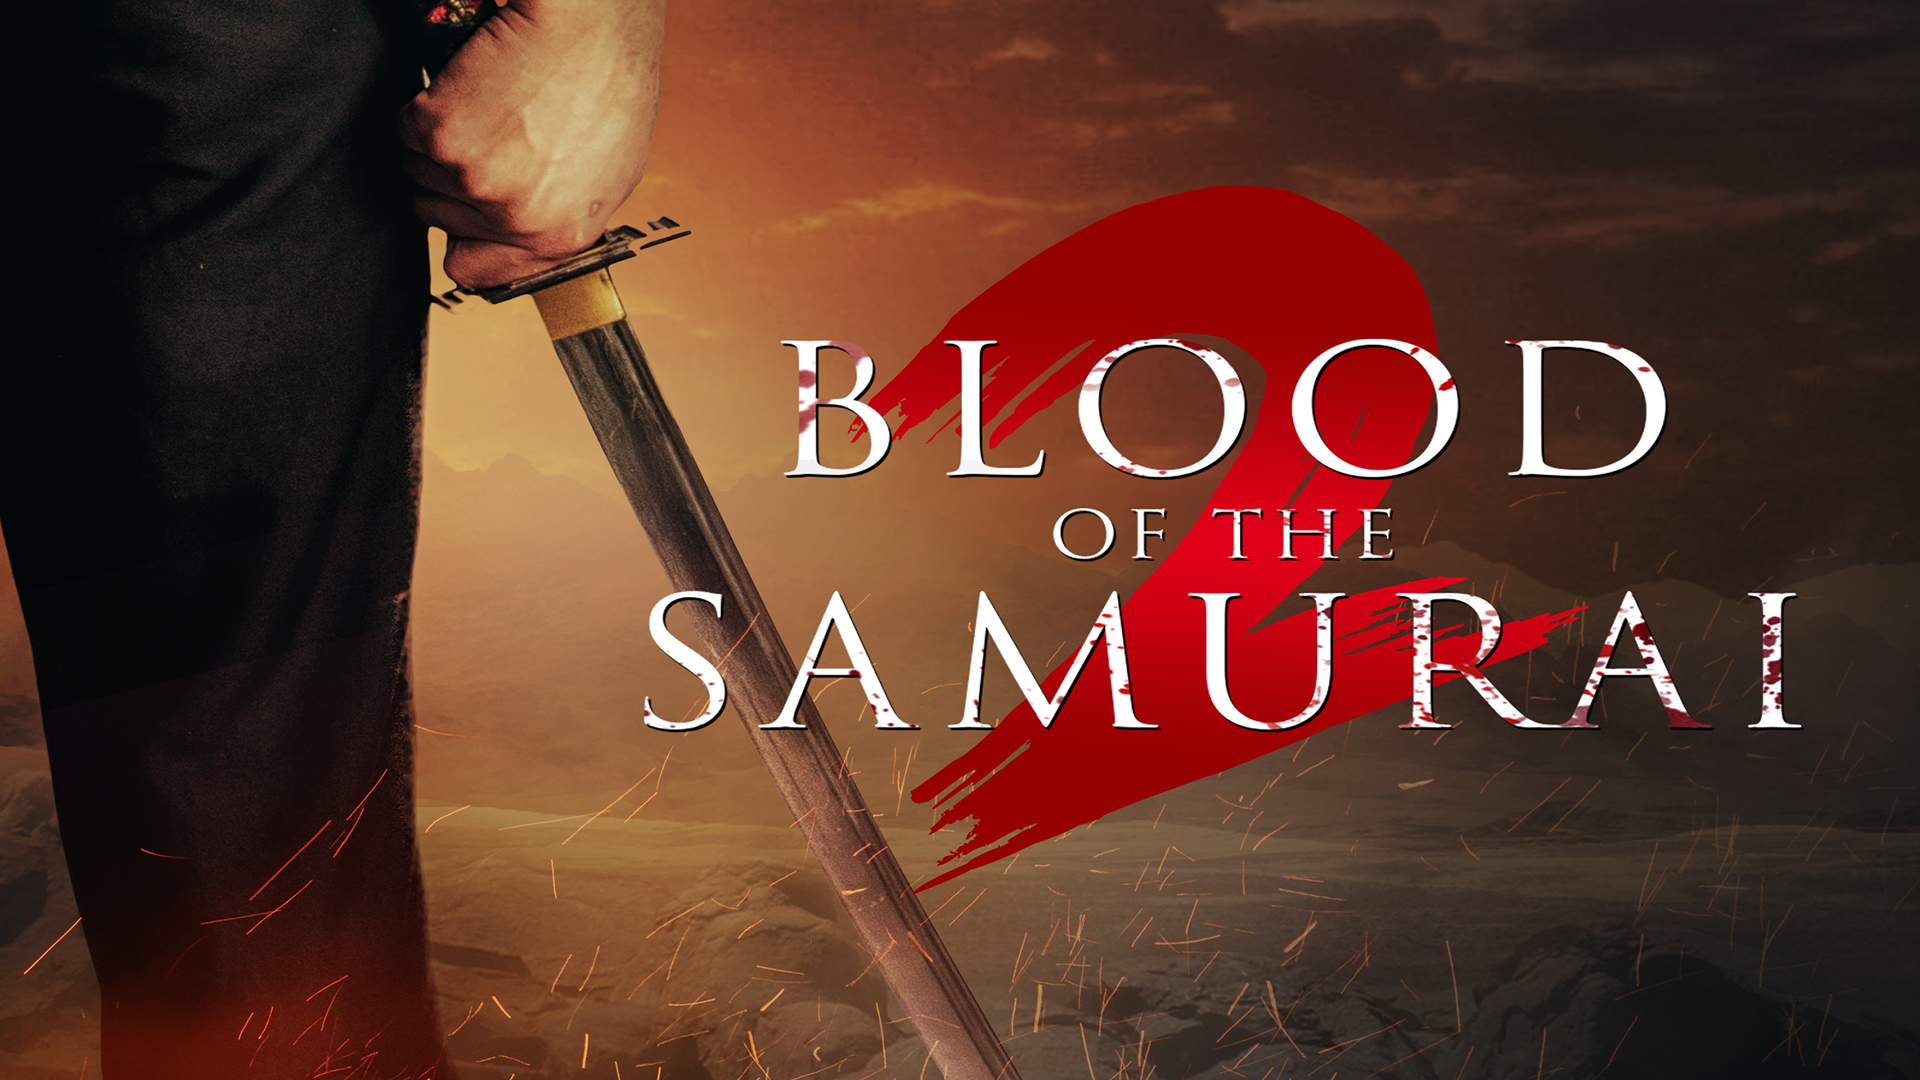 Blood of the Samurai 2